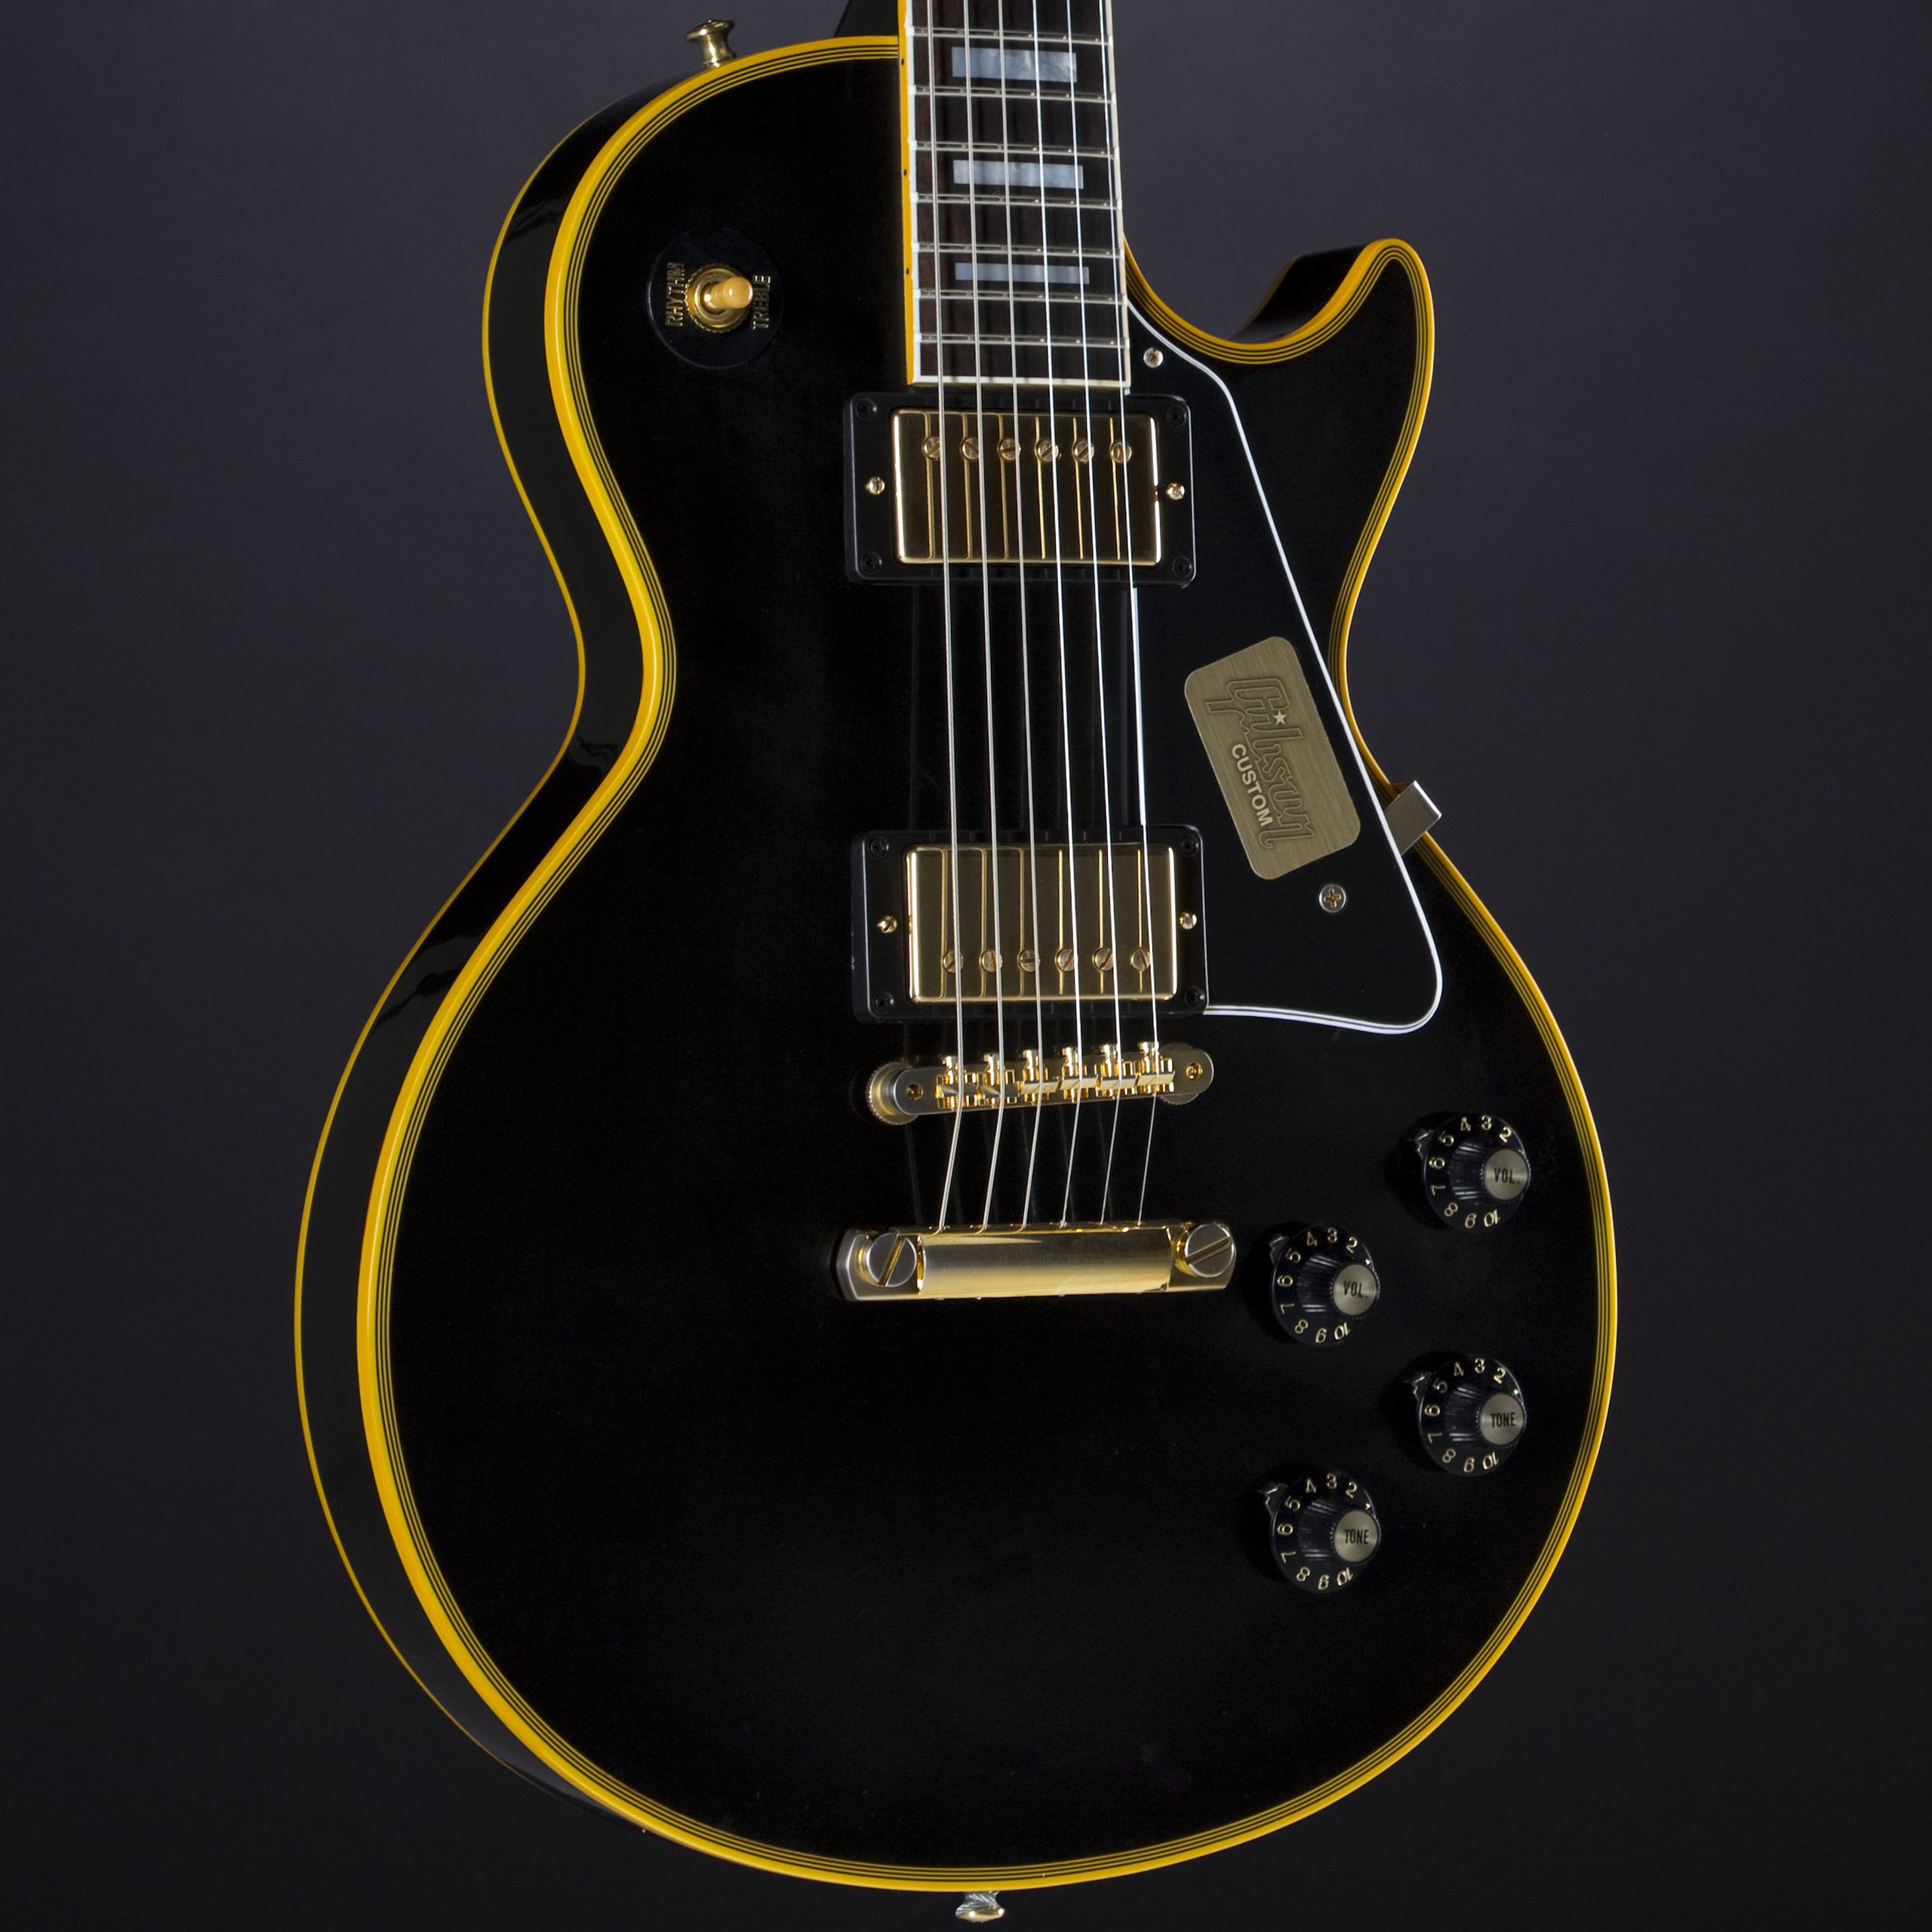 GIBSON 1974 Les Paul Custom Reissue Ebony #CS500111 Korpus